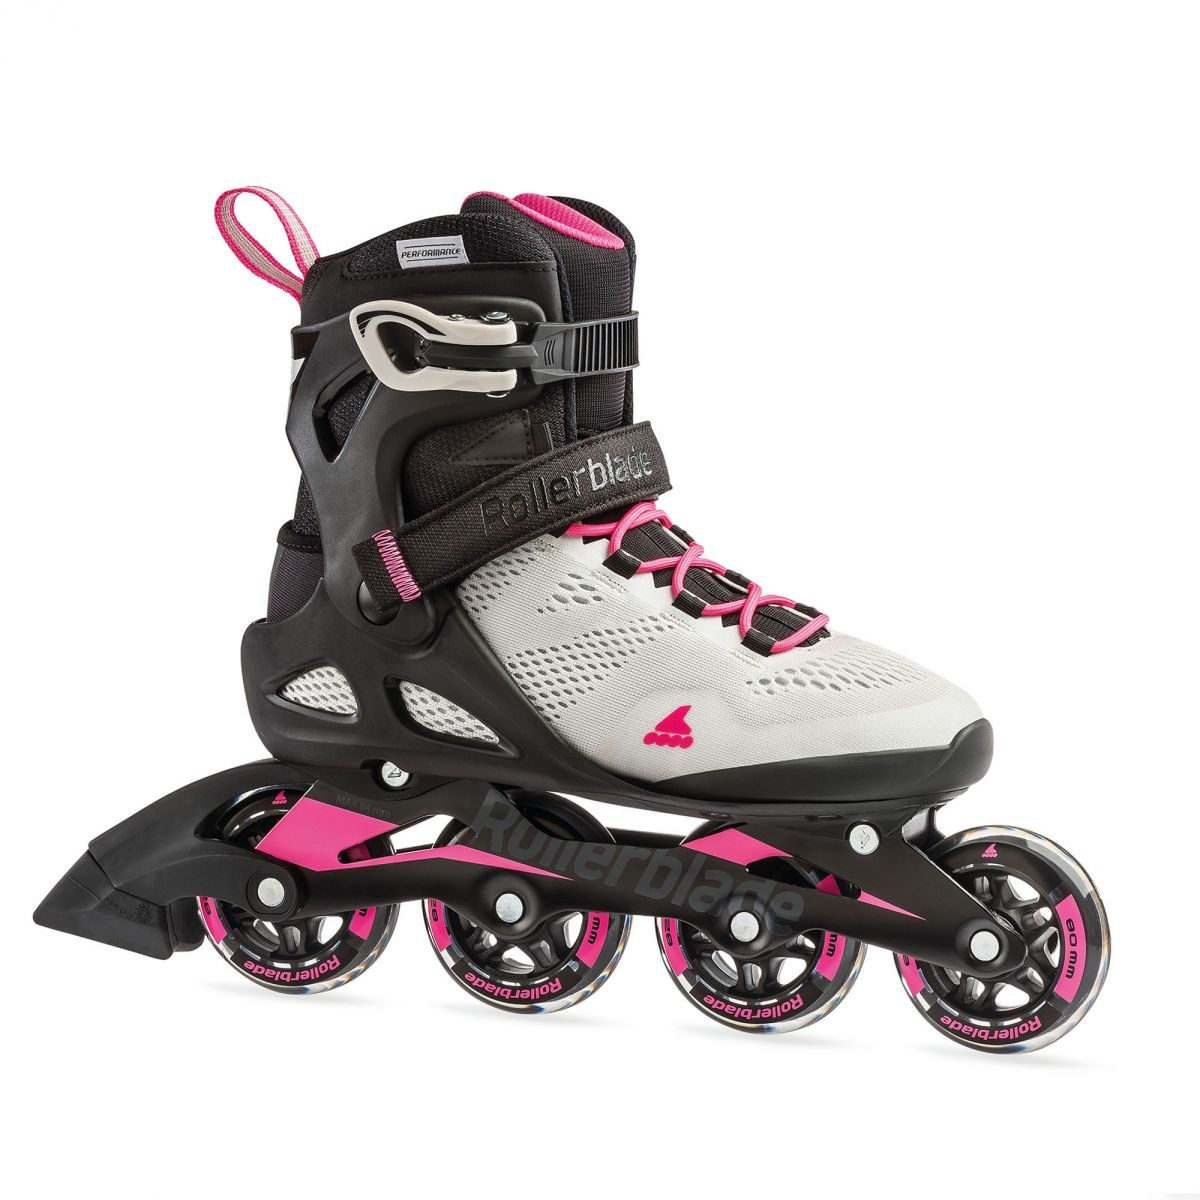 Rollerblade Macroblade 80 W Cool-grey/Candy-pink